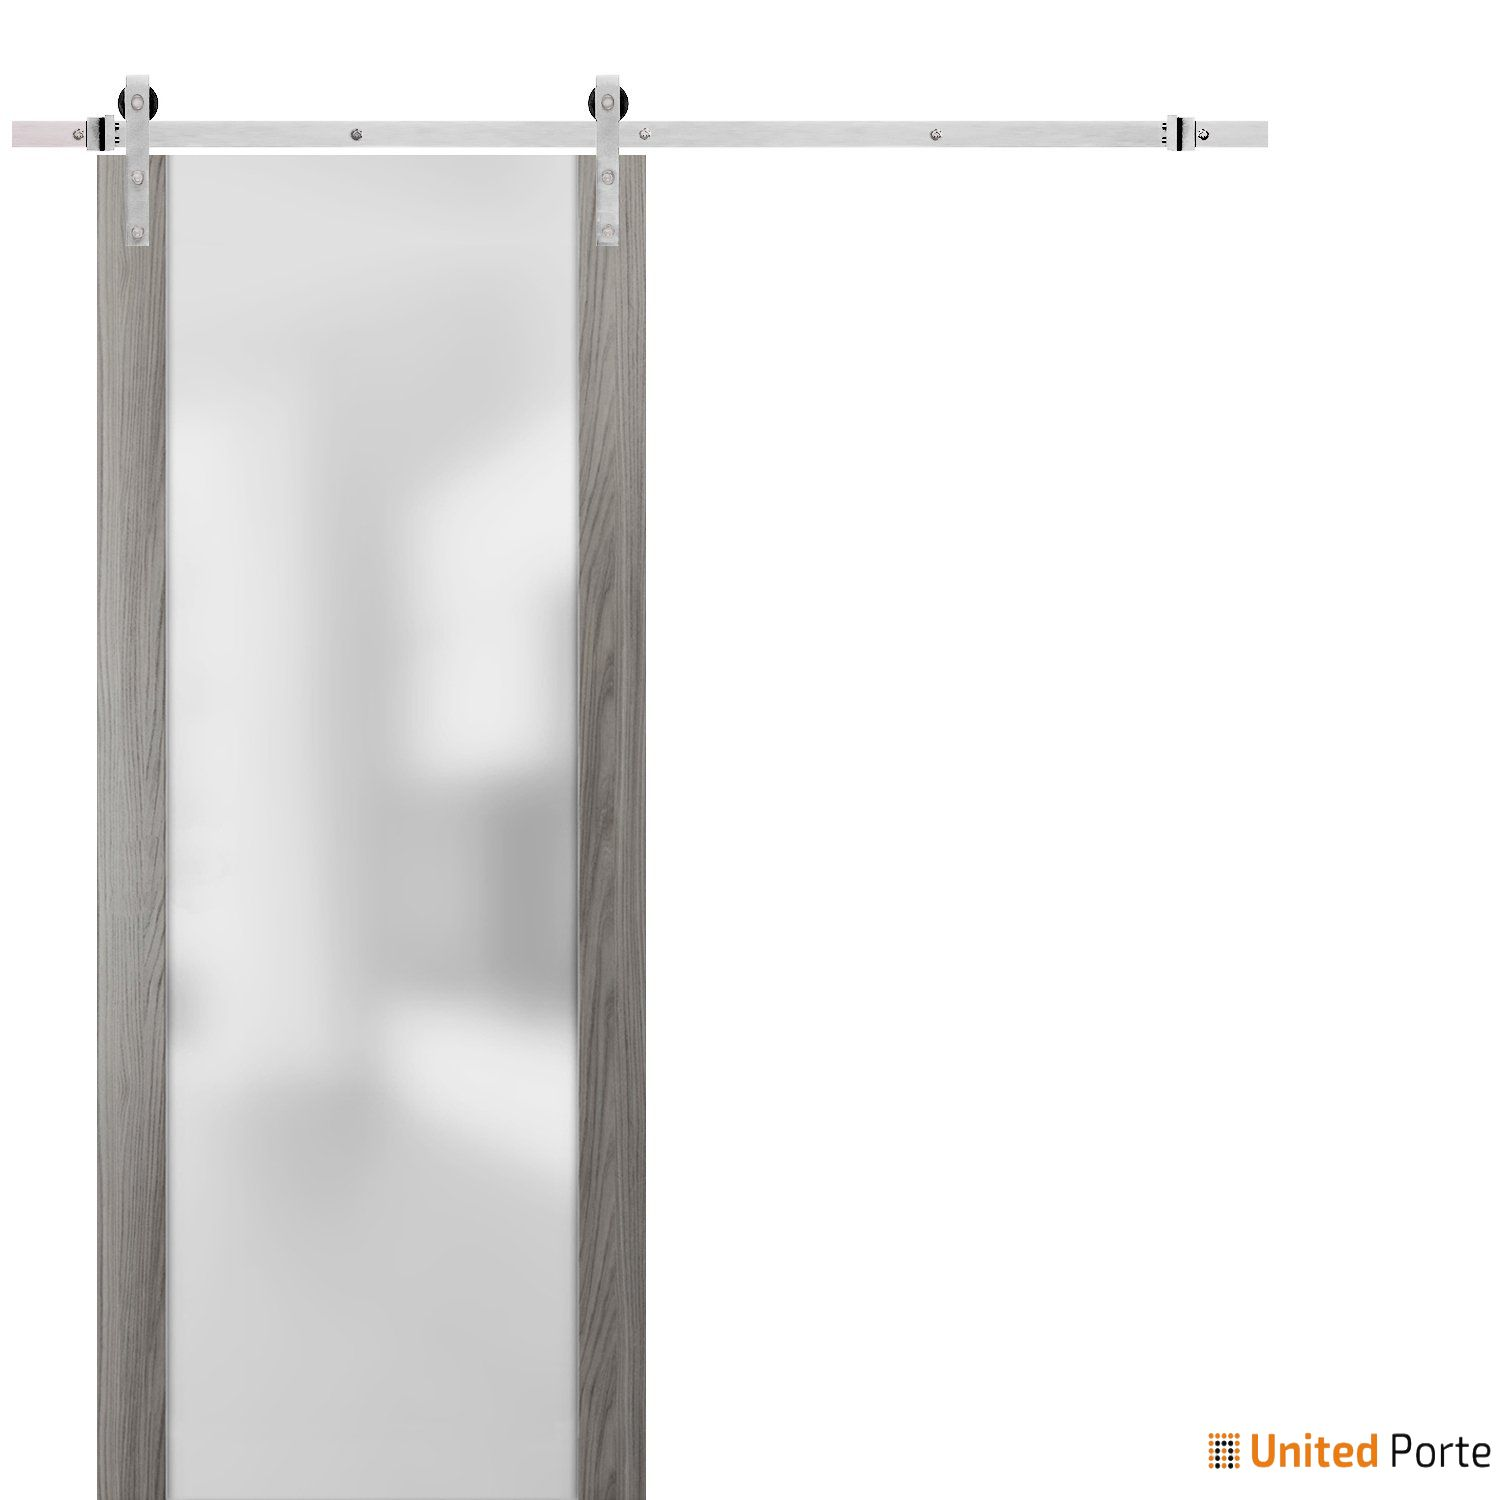 Planum 4114 Ginger Ash Sturdy Barn Door Frosted Tempered Glass with Stainless Hardware | Modern Solid Panel Interior Barn Doors